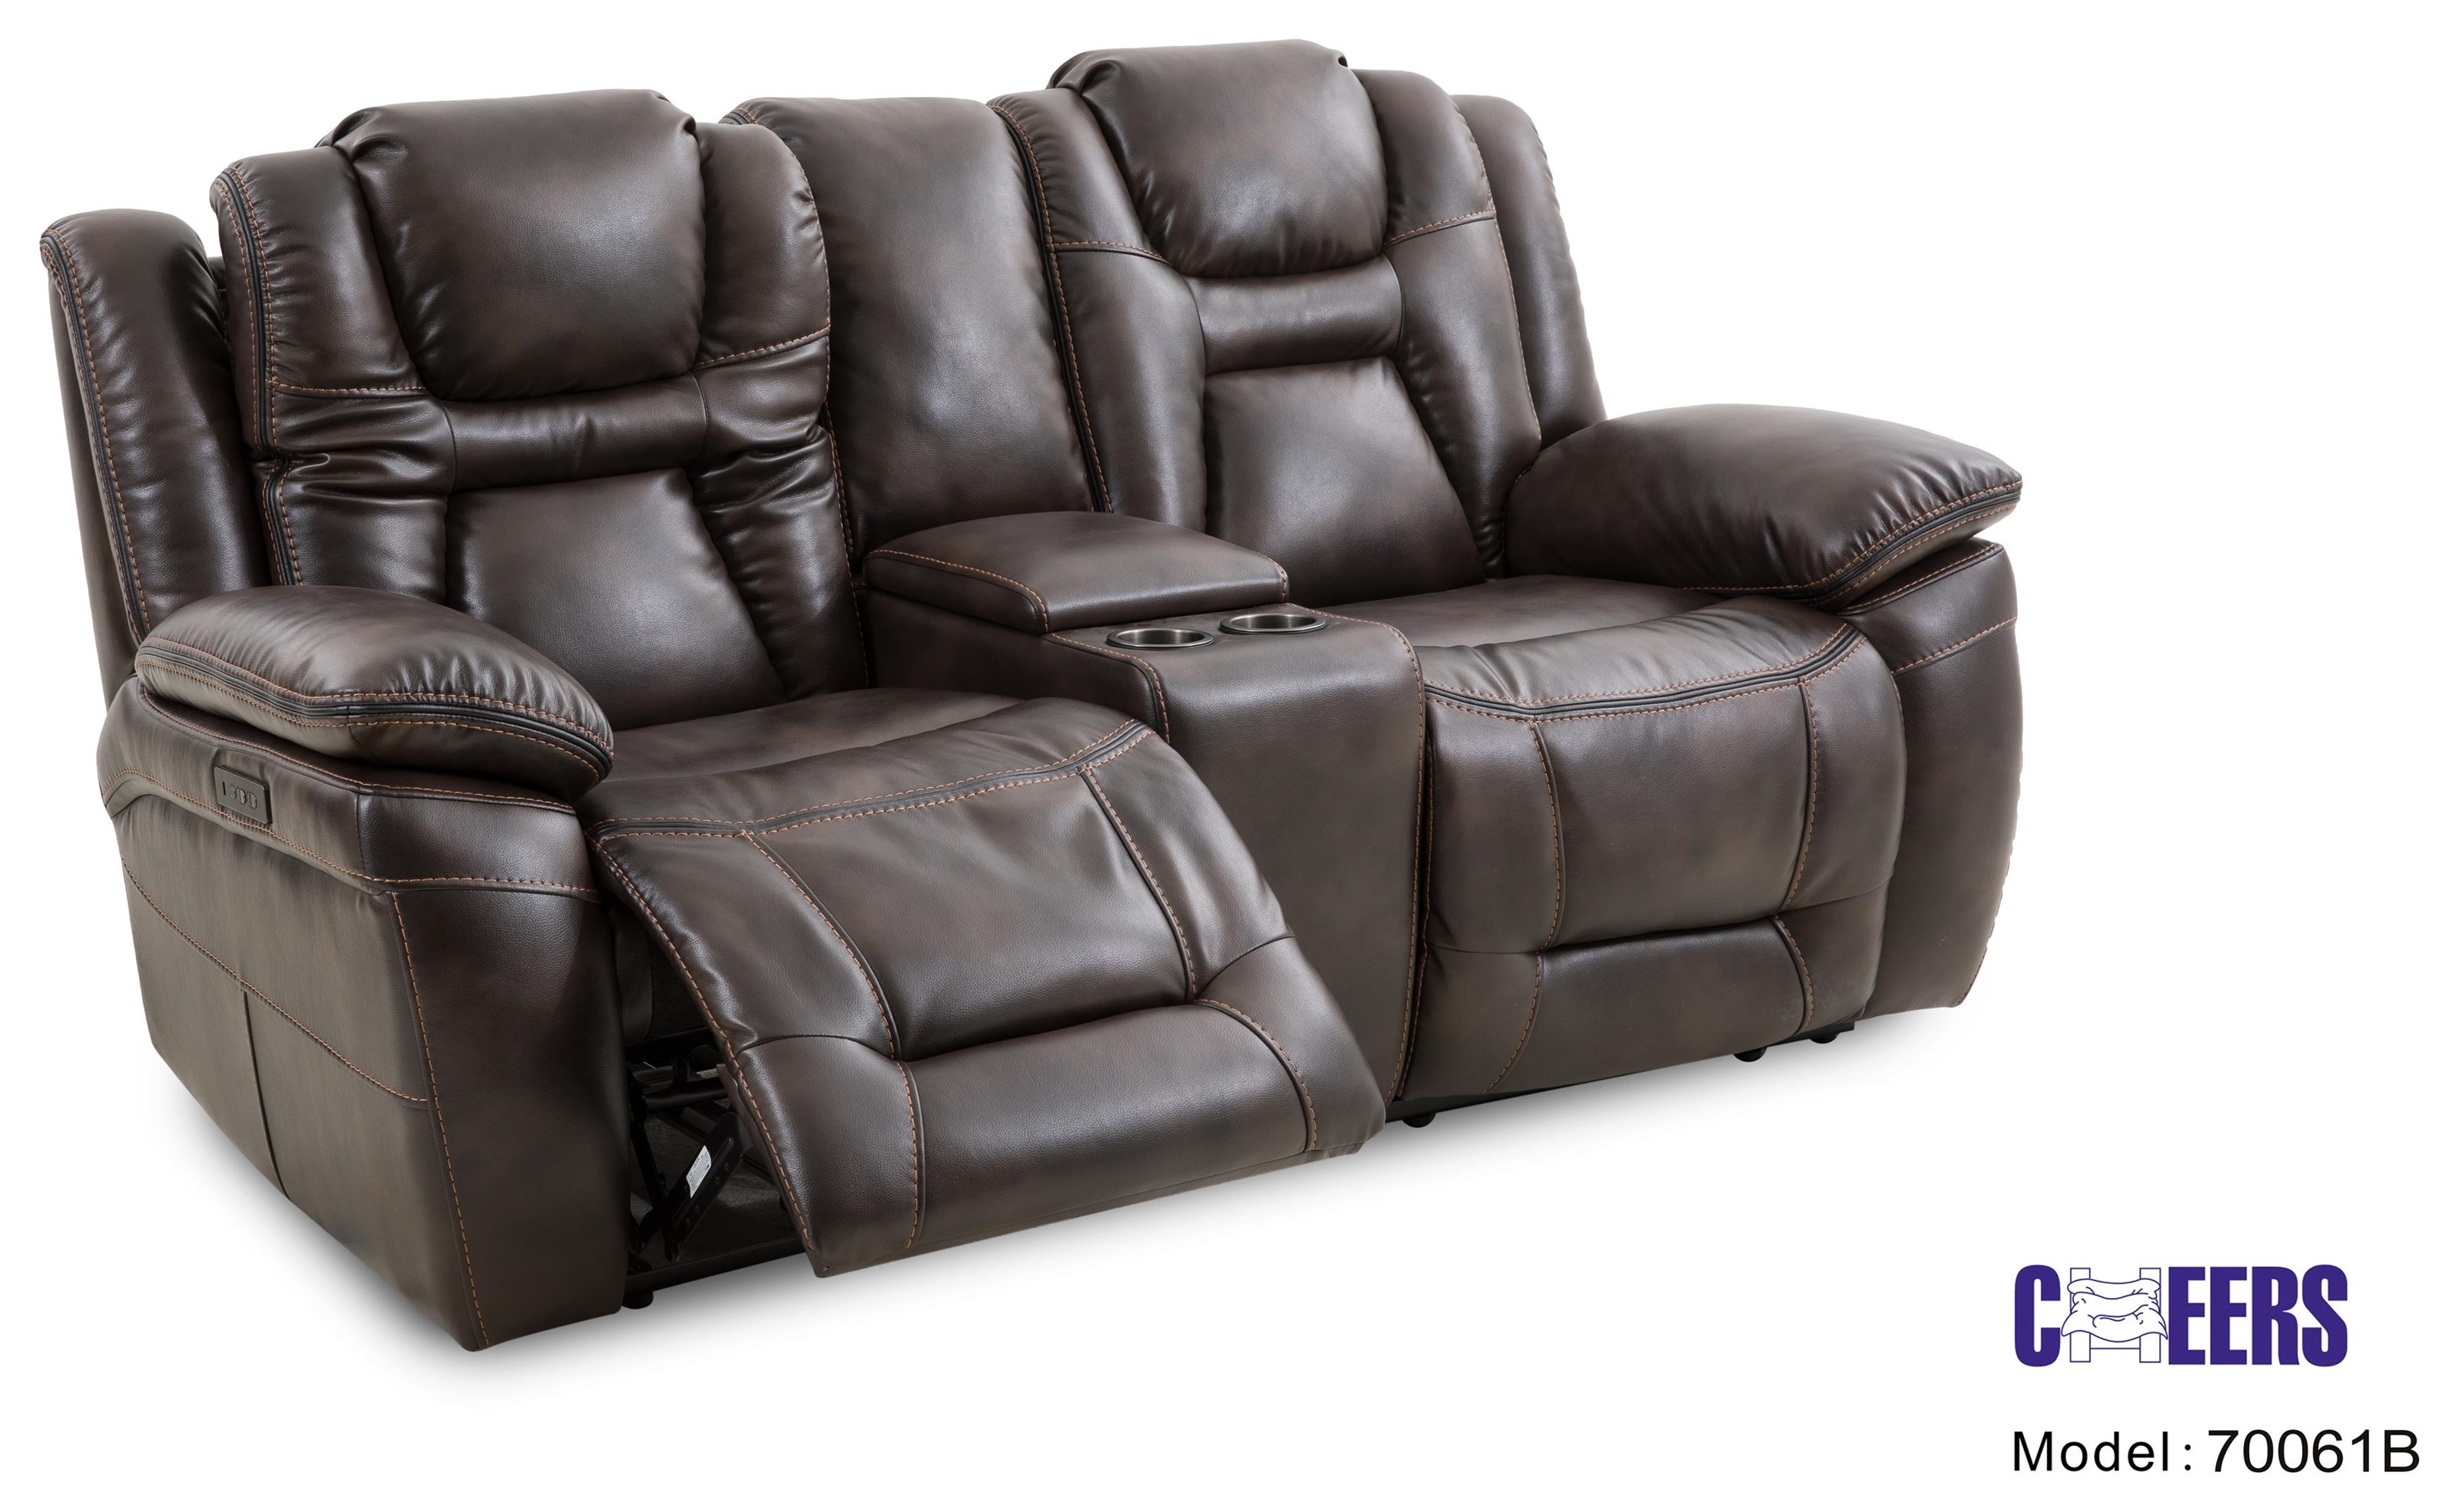 70061 Dual Power Reclining Console Loveseat by Cheers at Furniture Fair - North Carolina